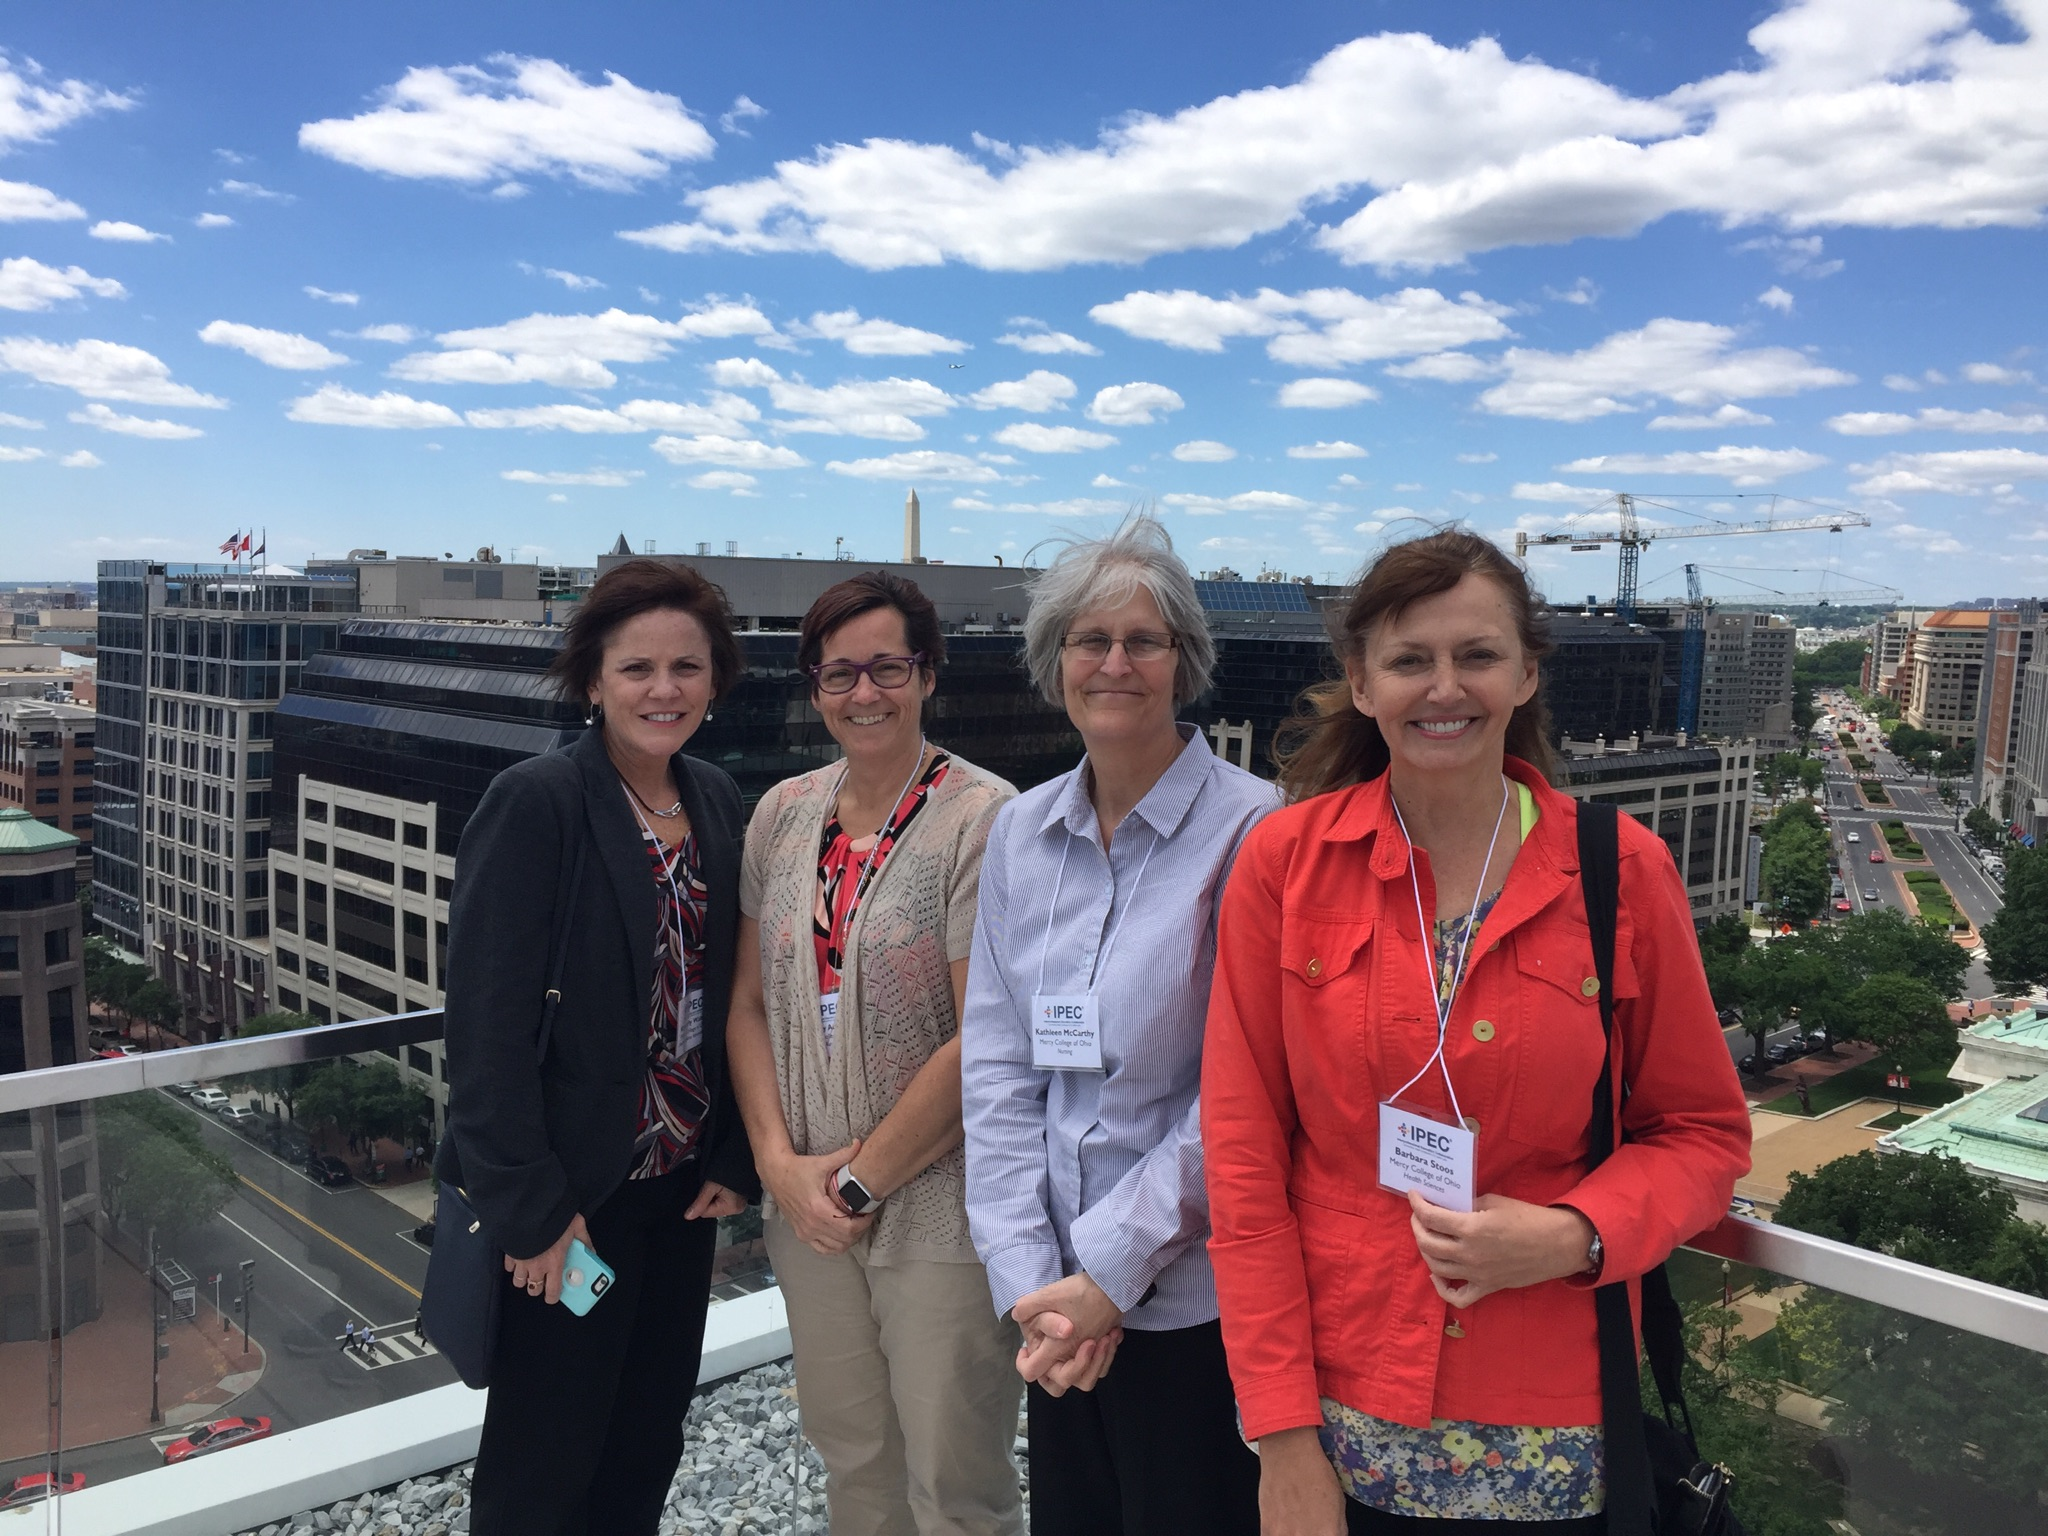 Joely Austin, Kathleen McCarthy, Kimberly Watson and Barbara Stoos at IPE Collaborative Institute